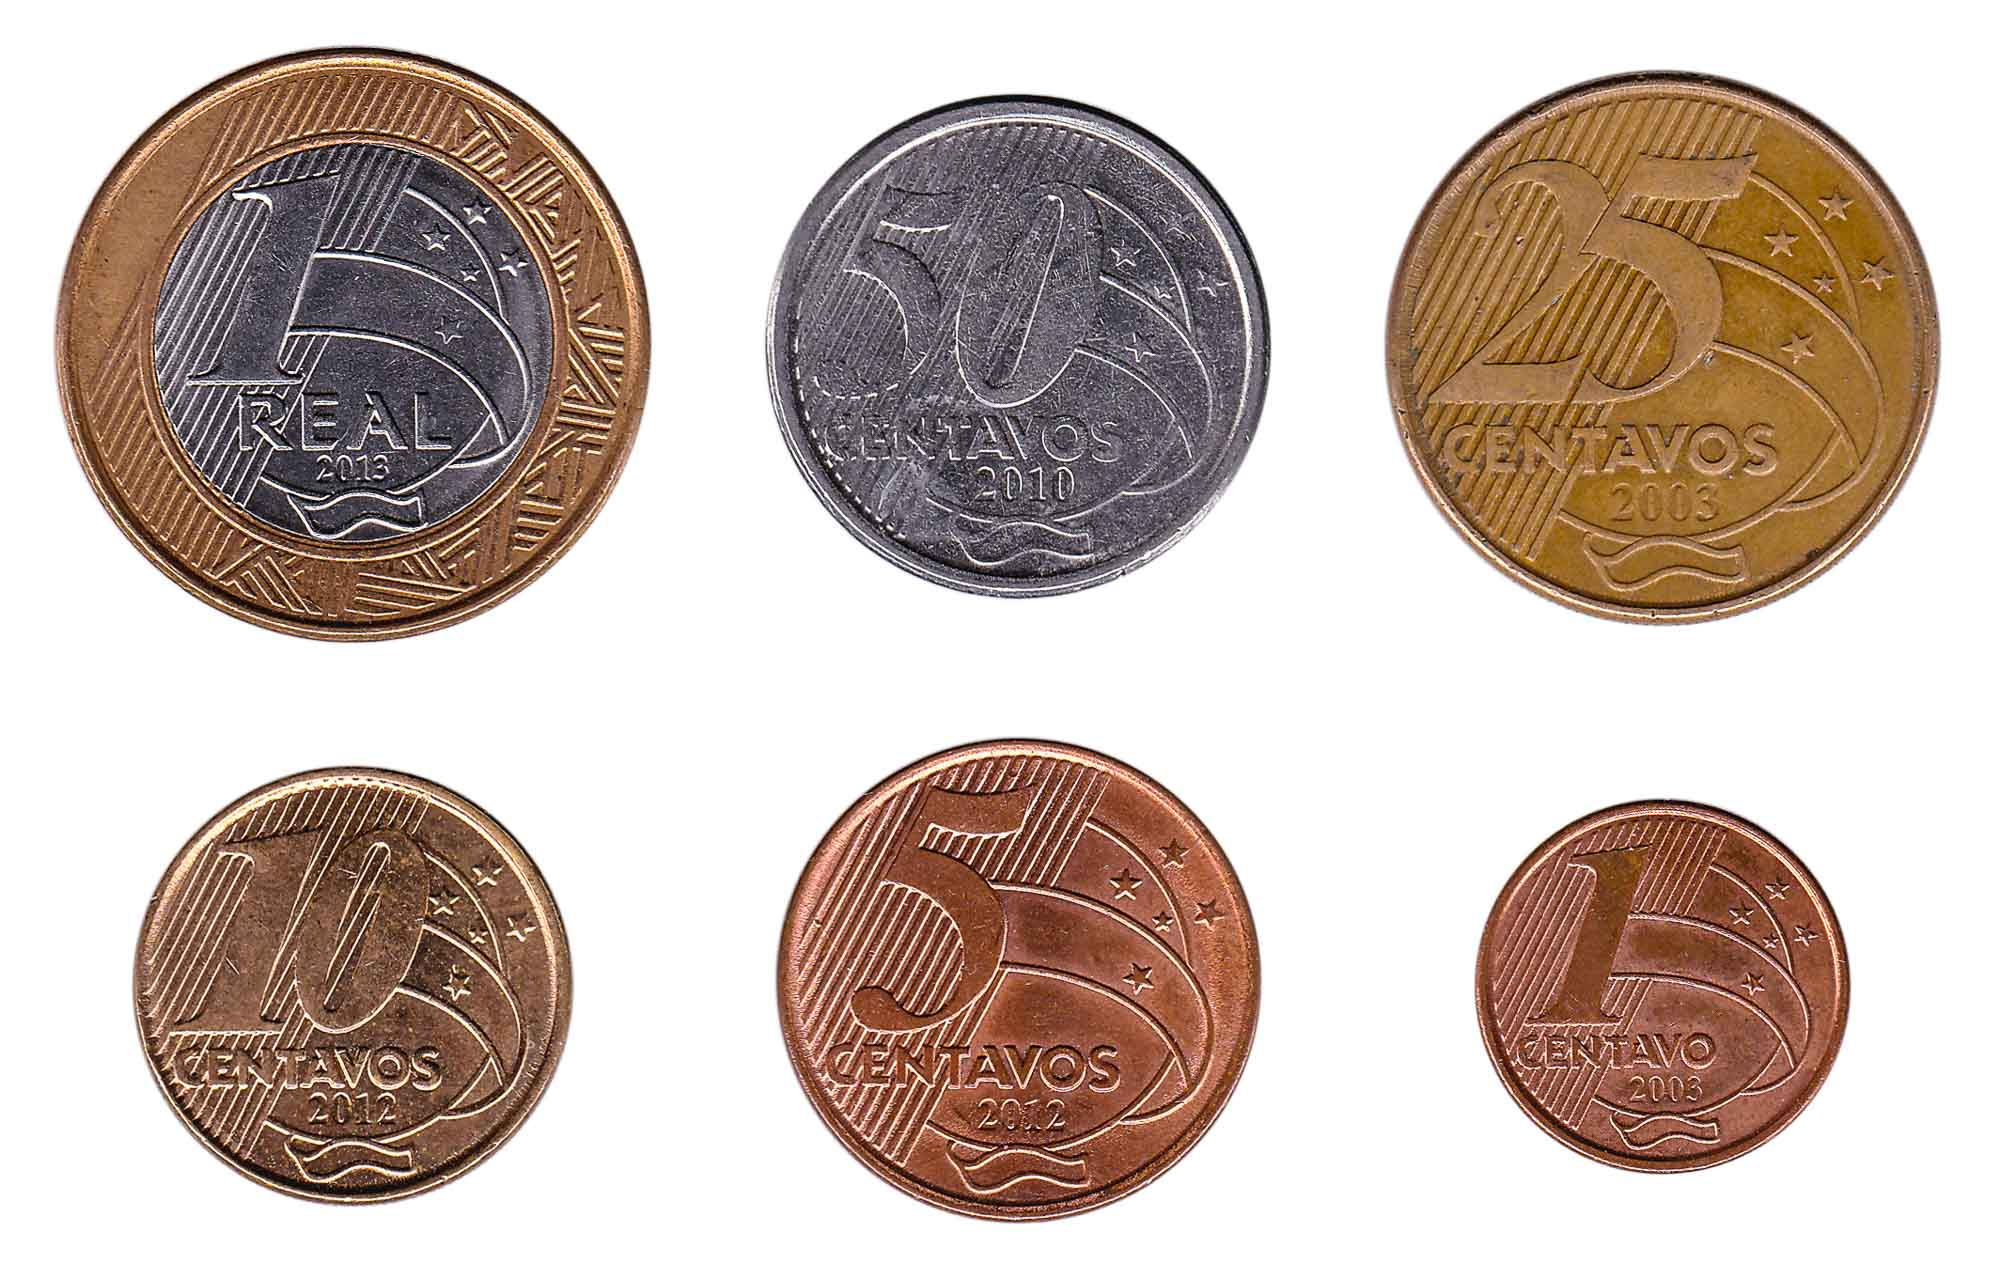 Brazilian real coins